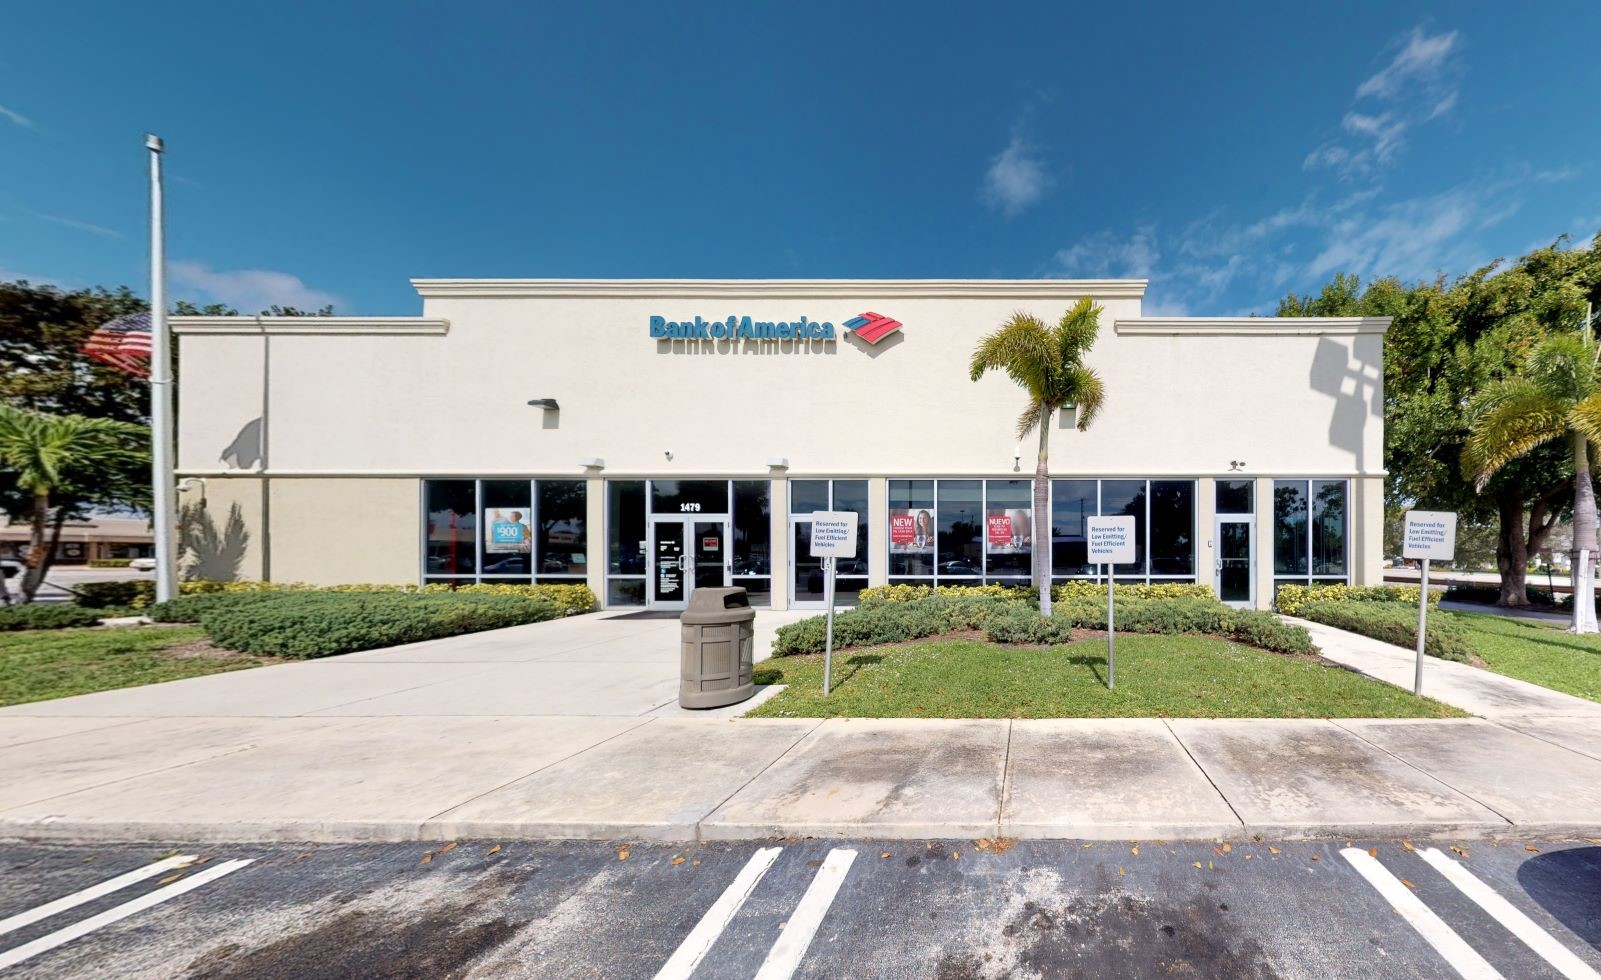 Bank of America financial center with drive-thru ATM | 1479 S Dixie Hwy, Lantana, FL 33462